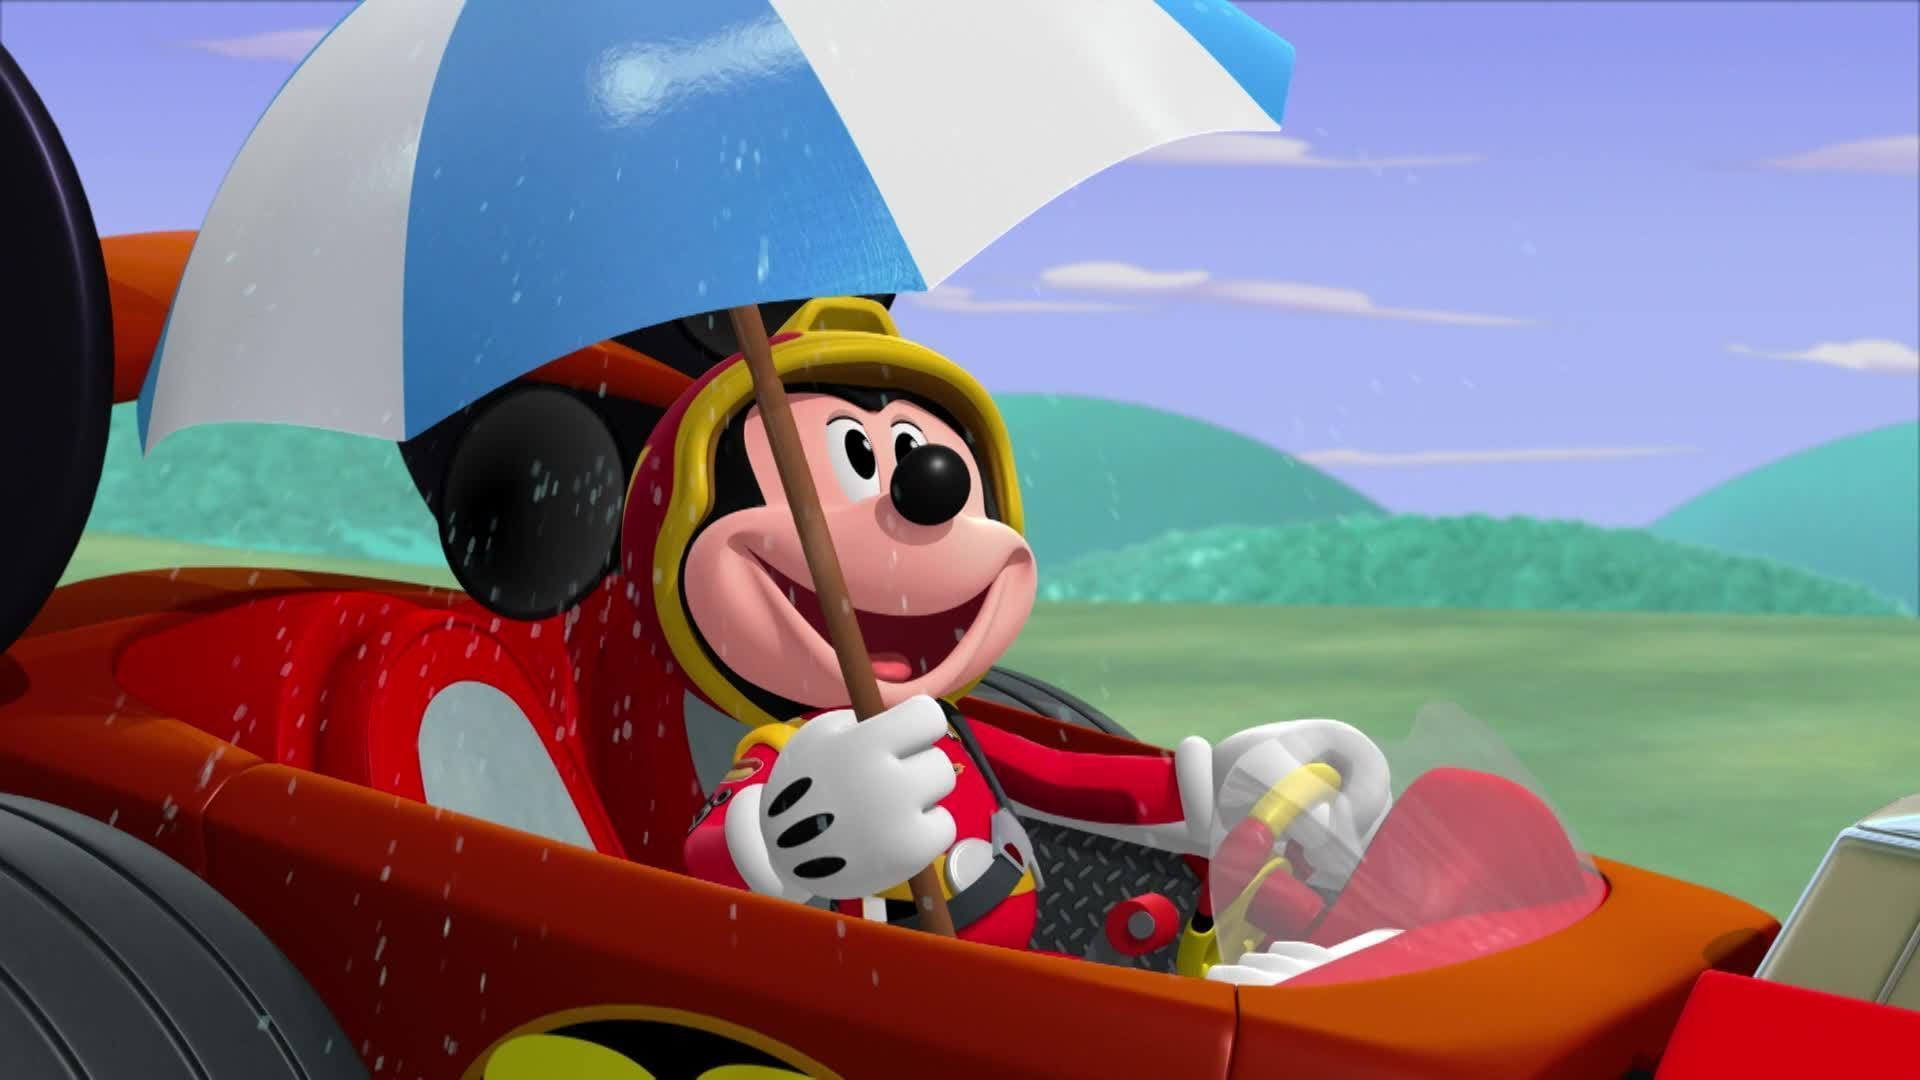 When I Grow Up 2020 | Mickey Mouse Roadster Racers | Disney Junior Asia